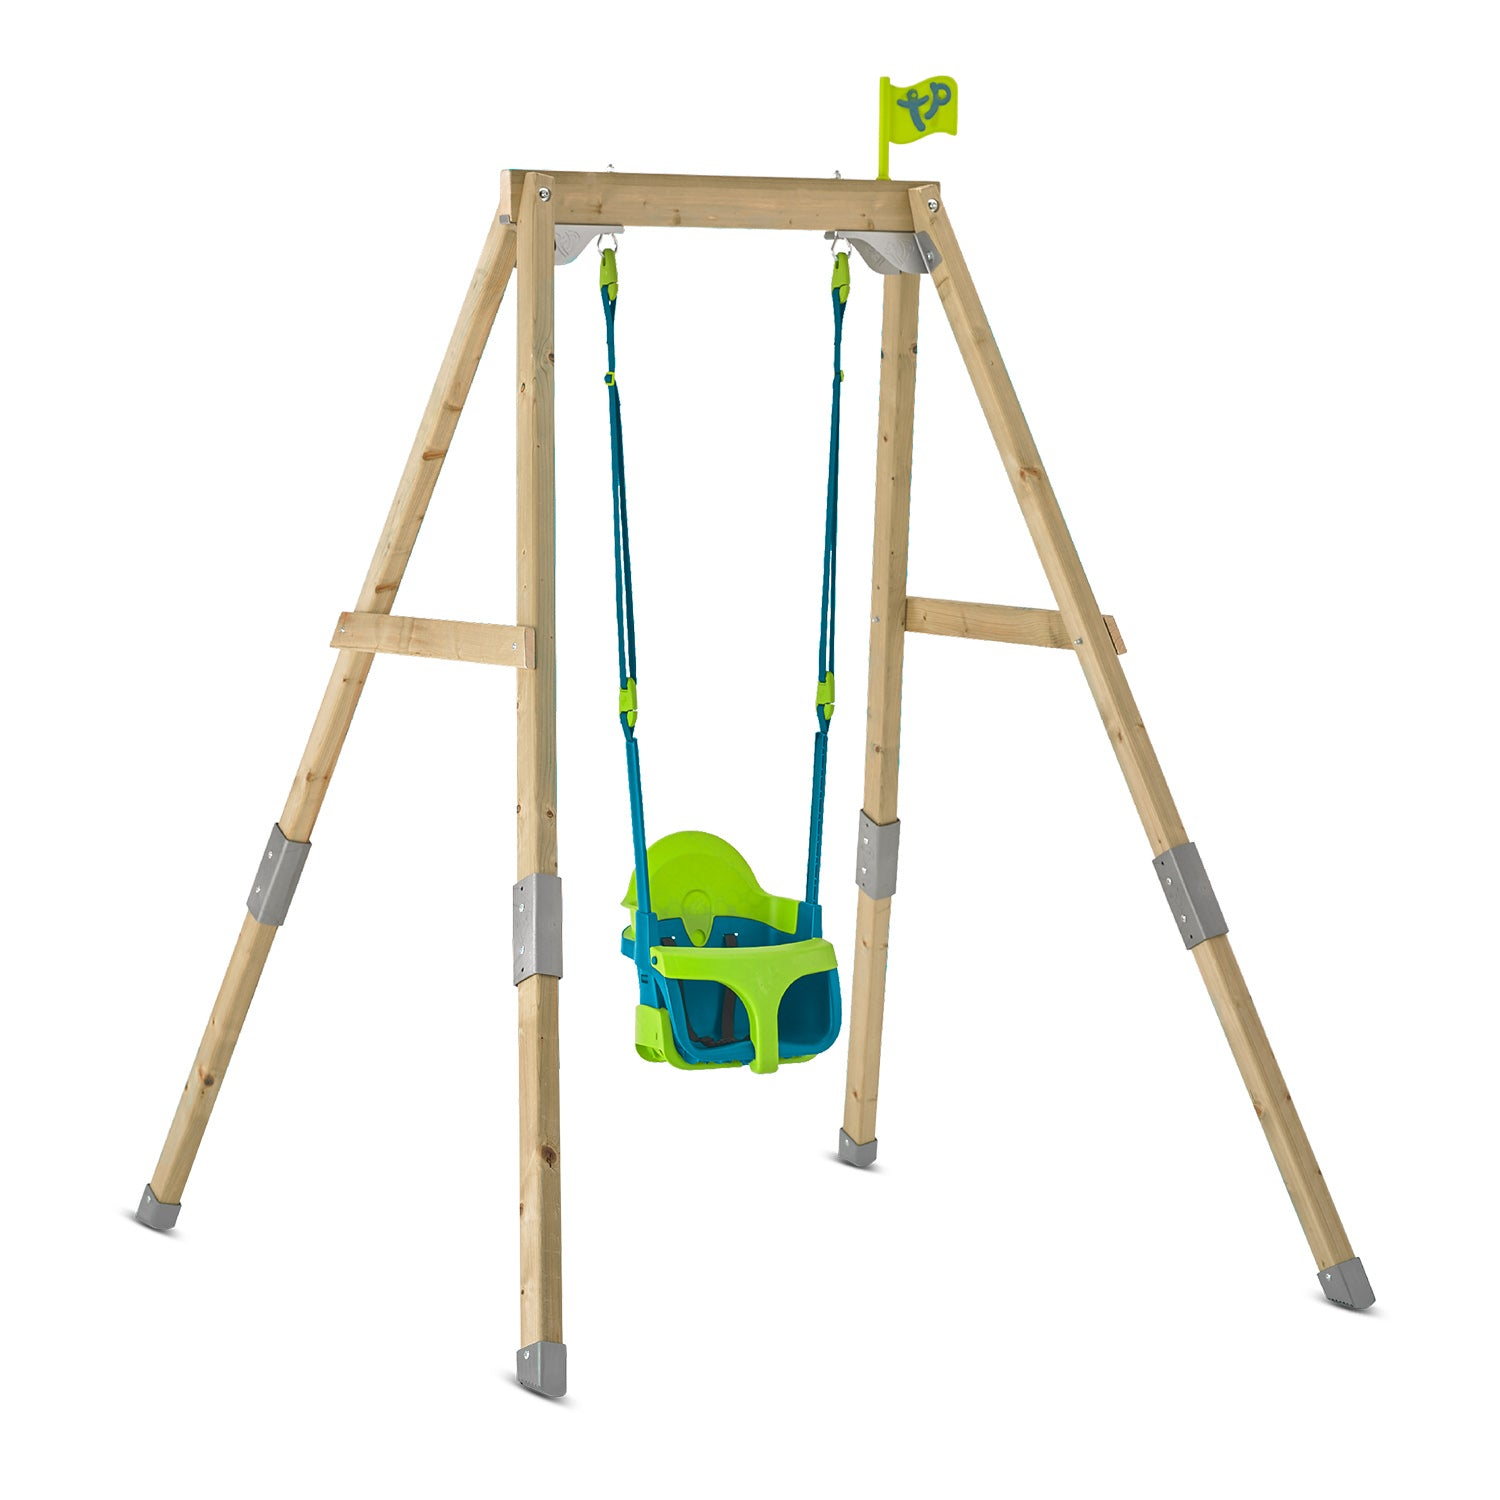 TP Toys Forest Acorn Growable Swing Frame with Quadpod Swing Seat